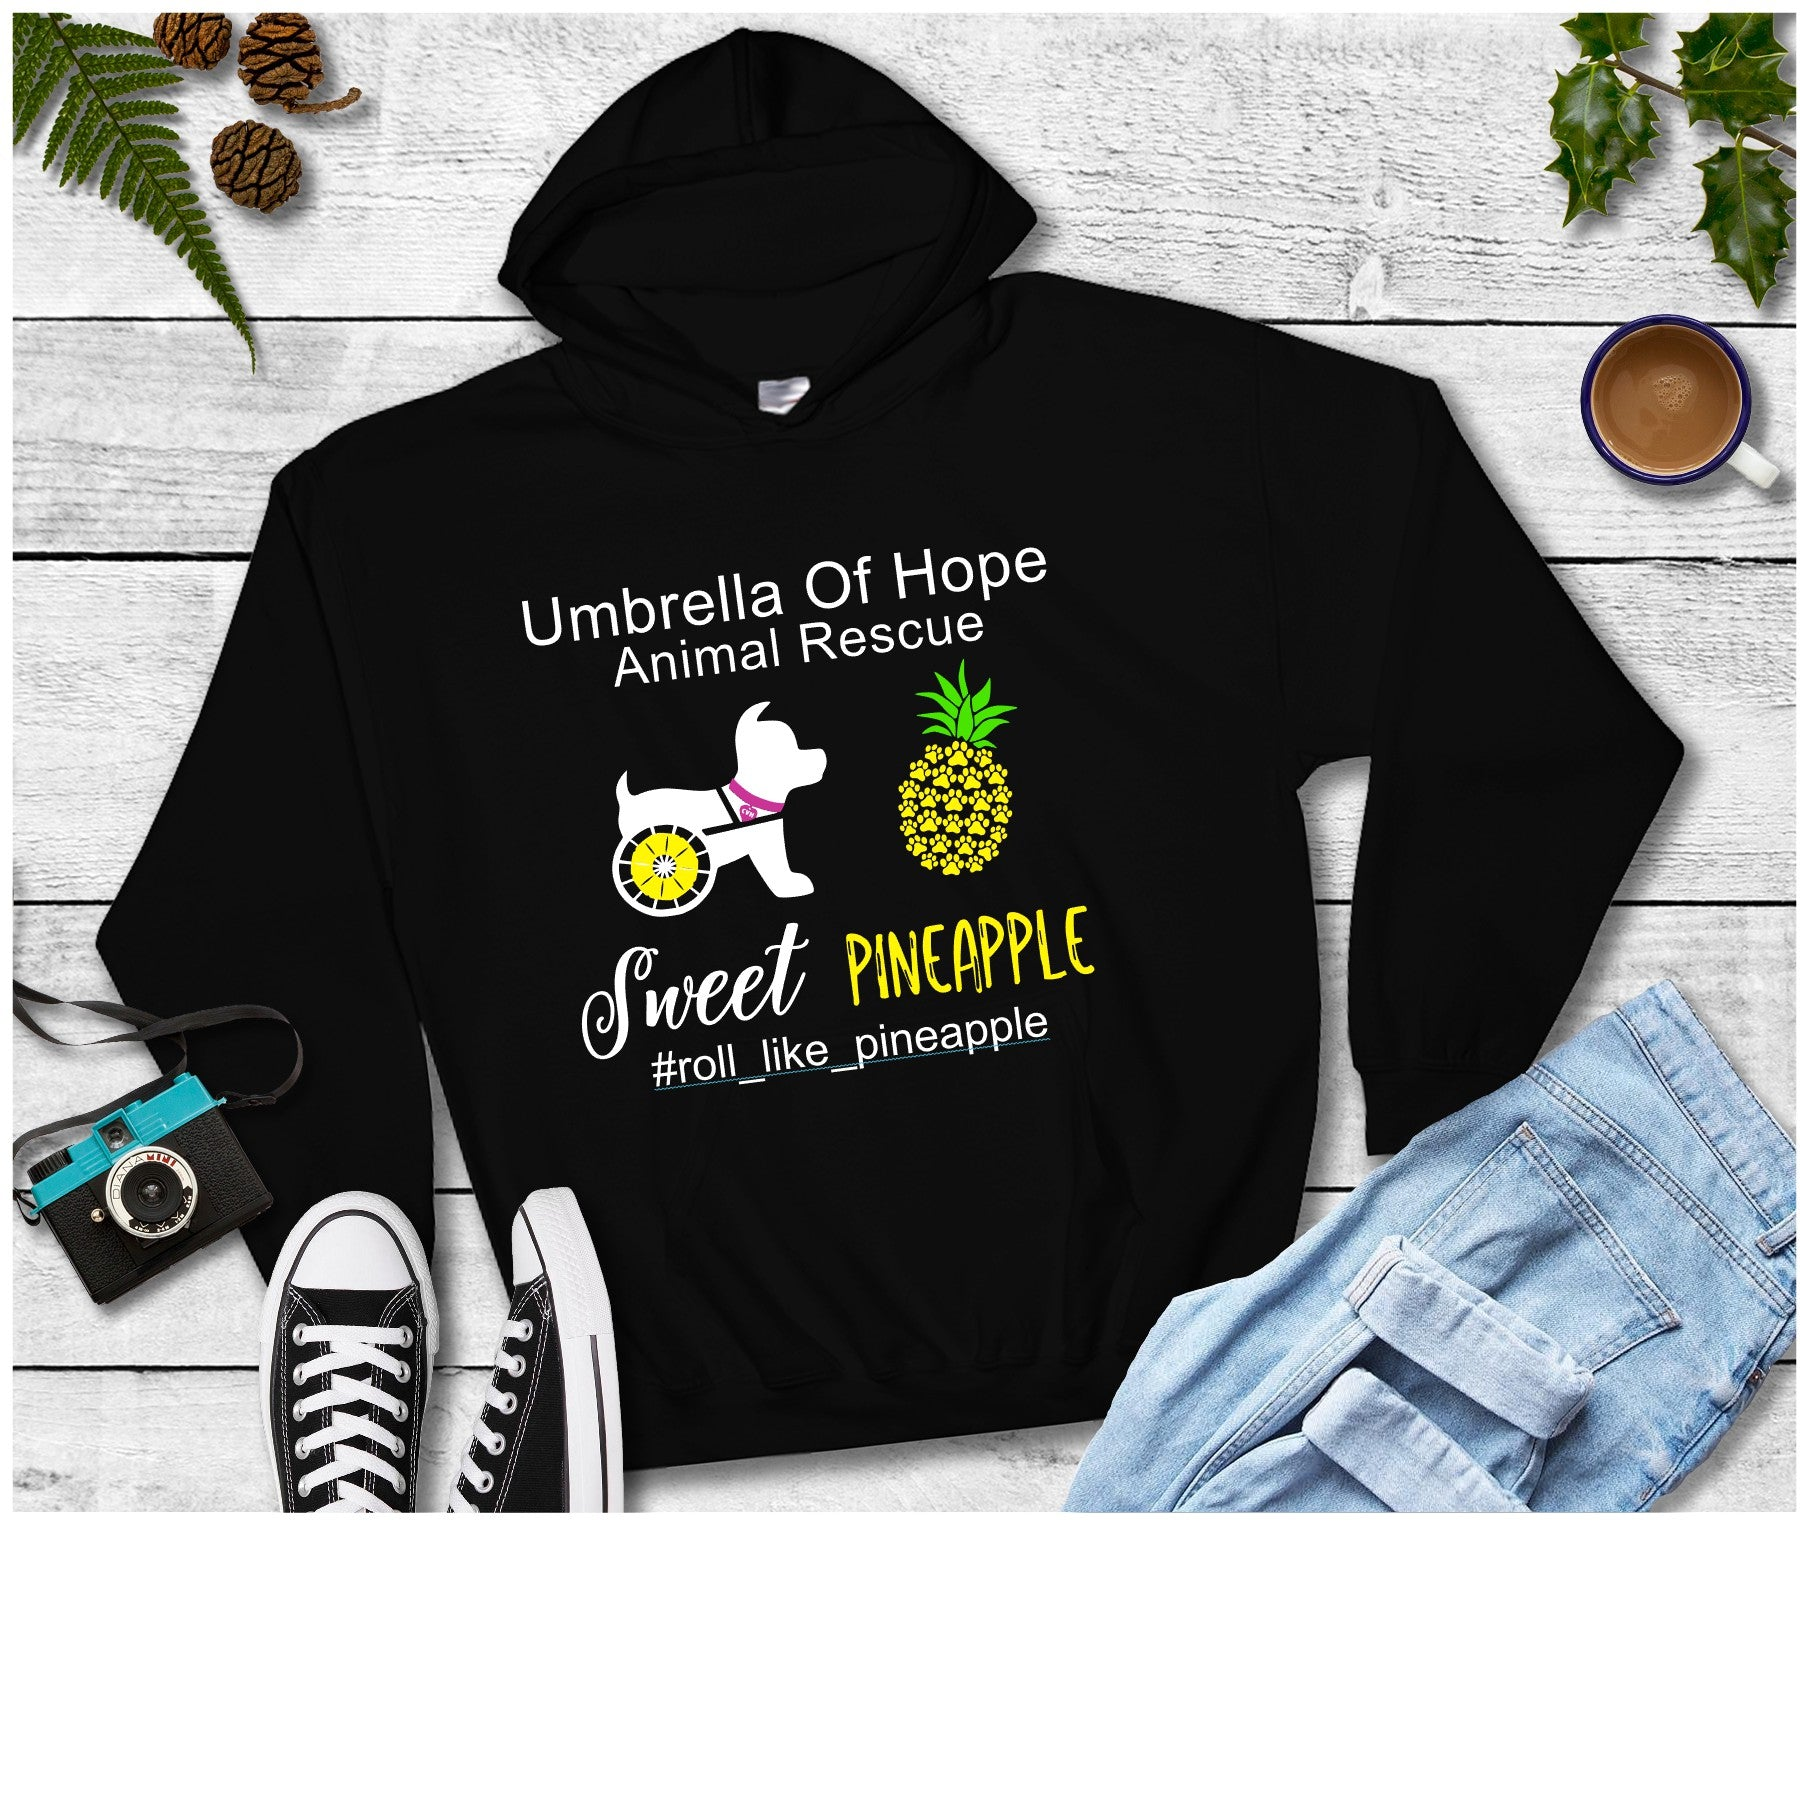 Sweet Pineapple Umbrella of Hope - Unisex Pullover Hoodie - Ruff Life Rescue Wear